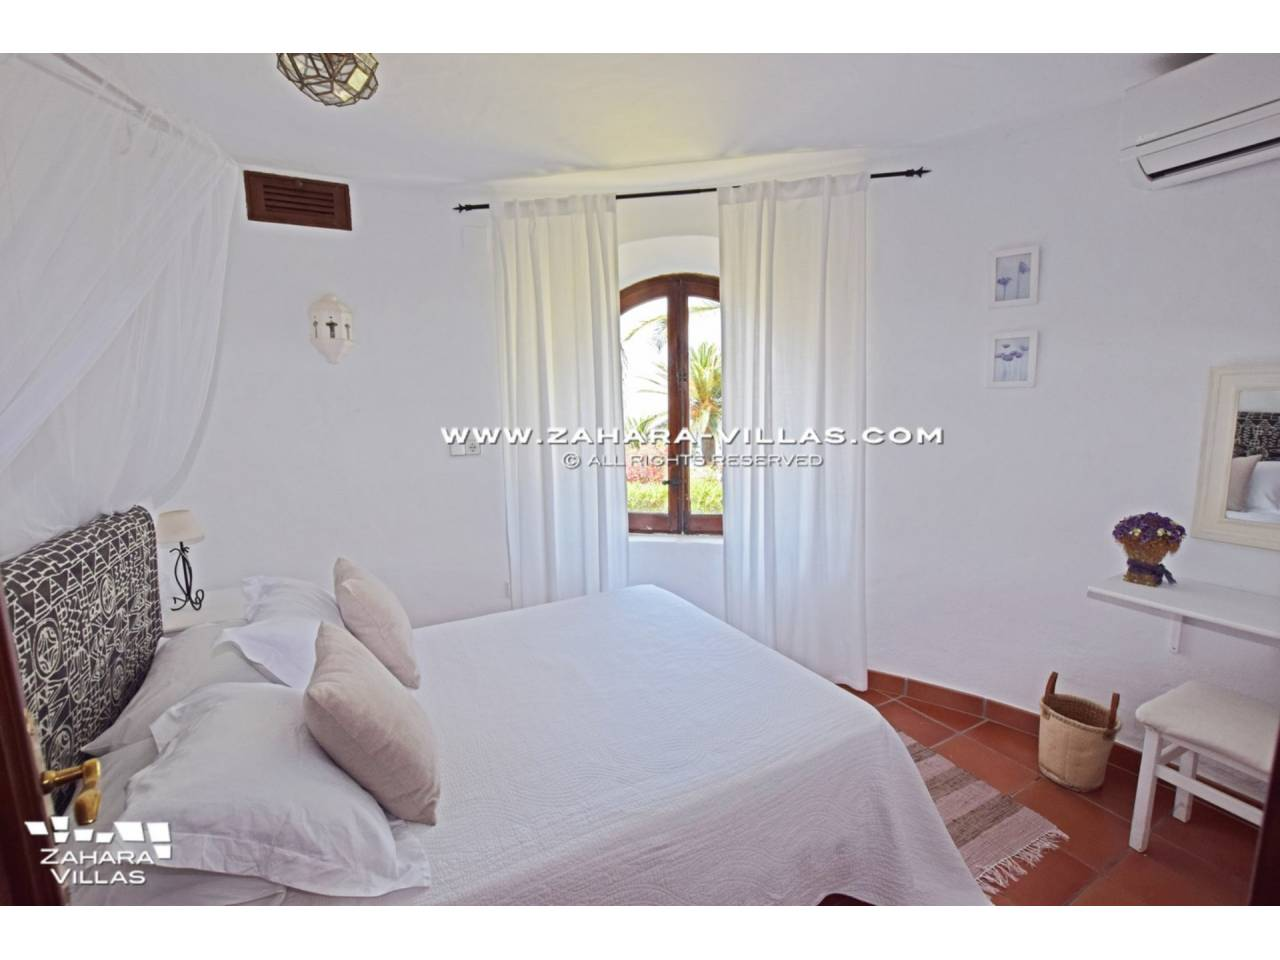 Imagen 42 de Wonderful Villa for sale in Atlanterra-Zahara de los Atunes